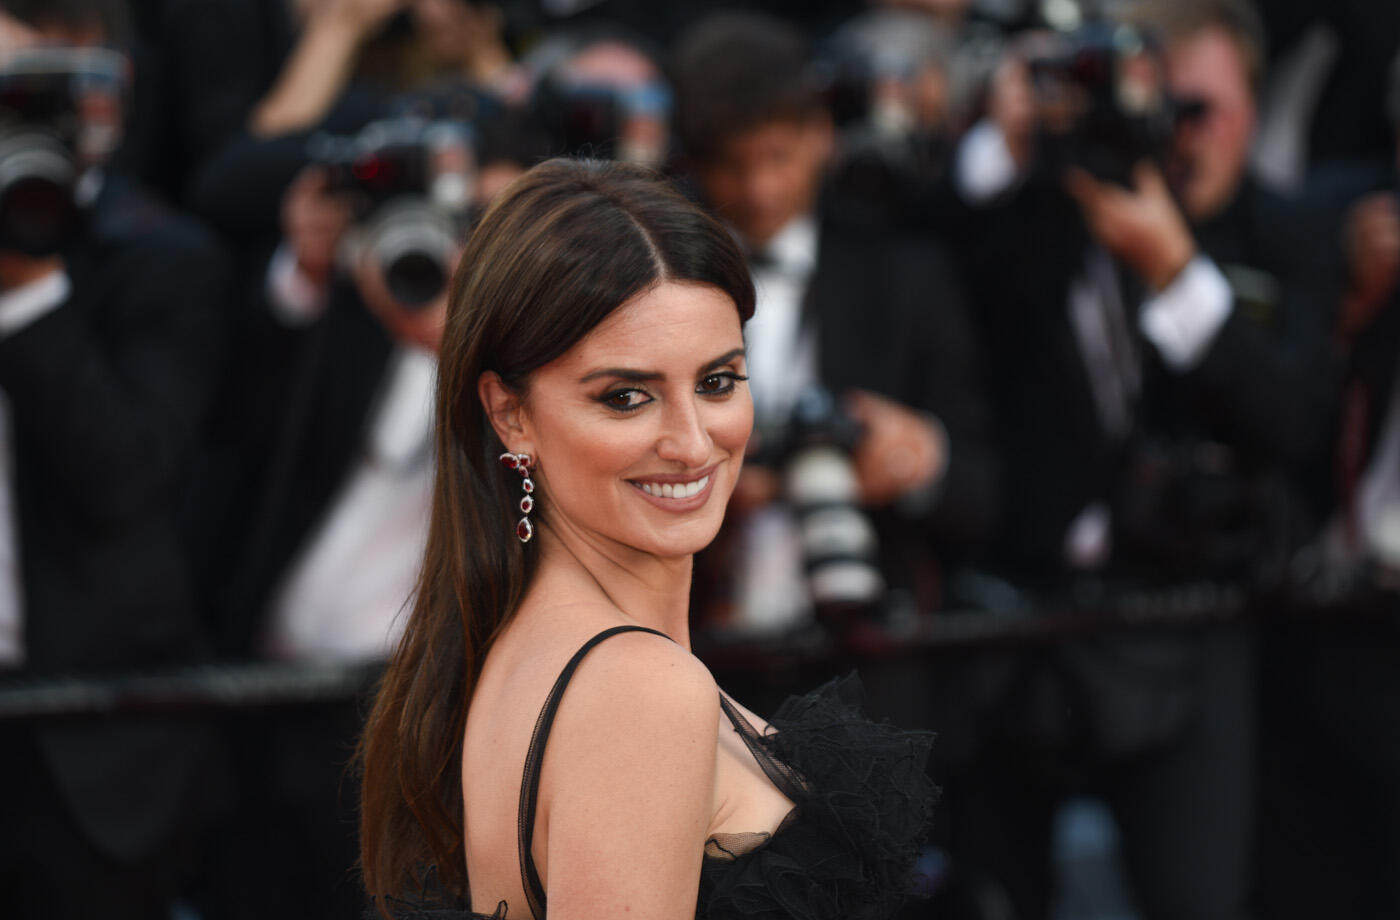 Penélope Cruz launches the glittering parade of stars at the 71st Cannes Film Festival. The Spanish actress was on the Croisette for her latest film 'Everybody Knows' by Iranian director Asghar Farhadi.